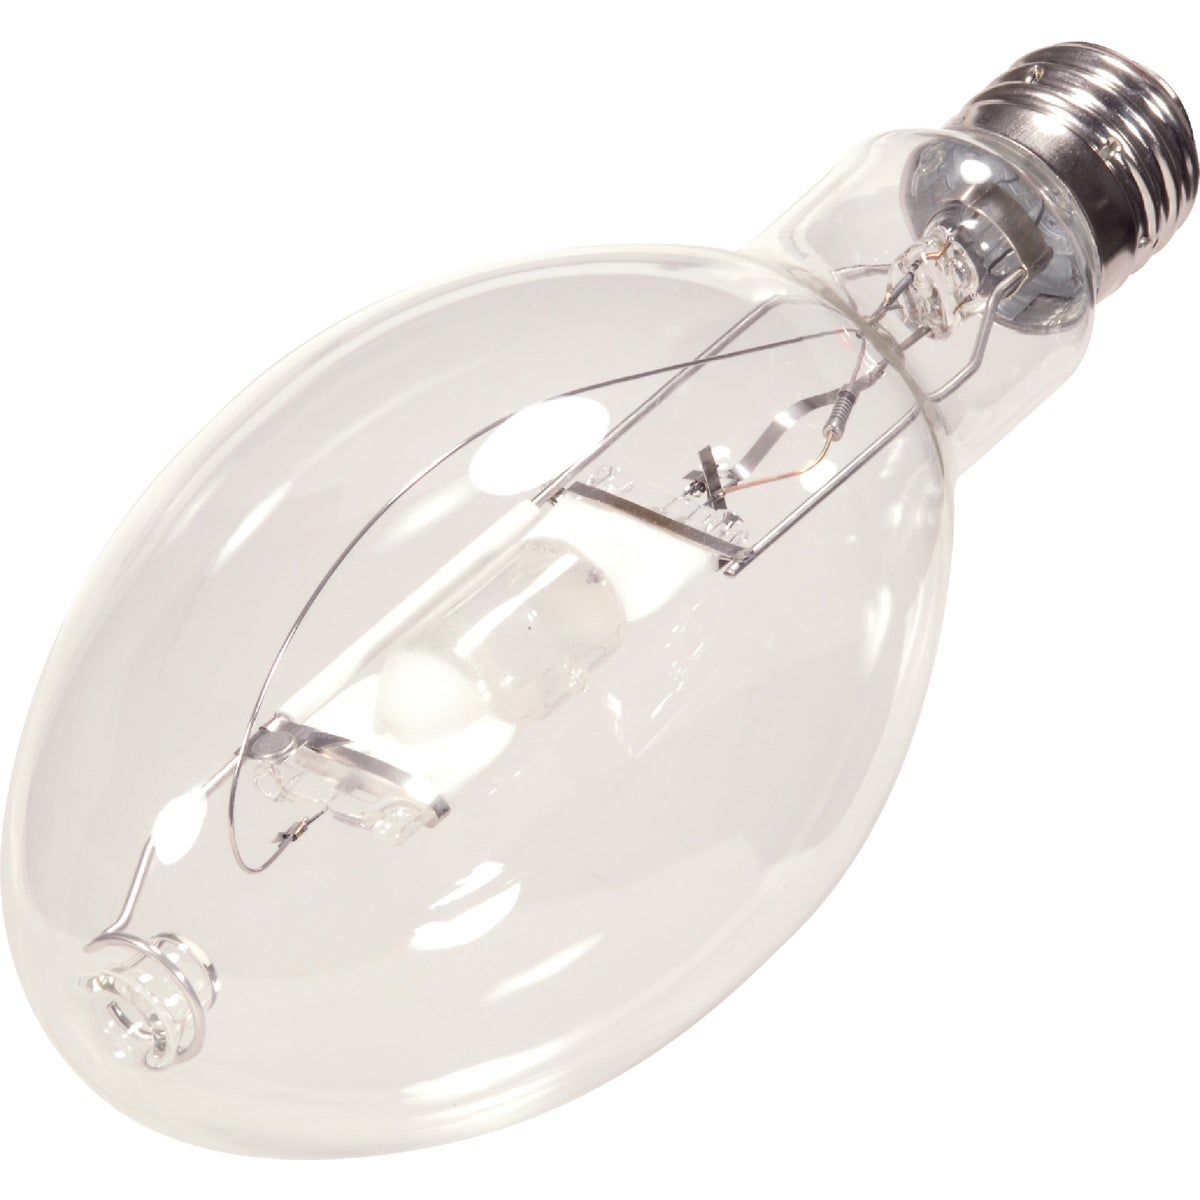 400W METAL HALIDE BULB - 37024 by Westinghouse Lightng